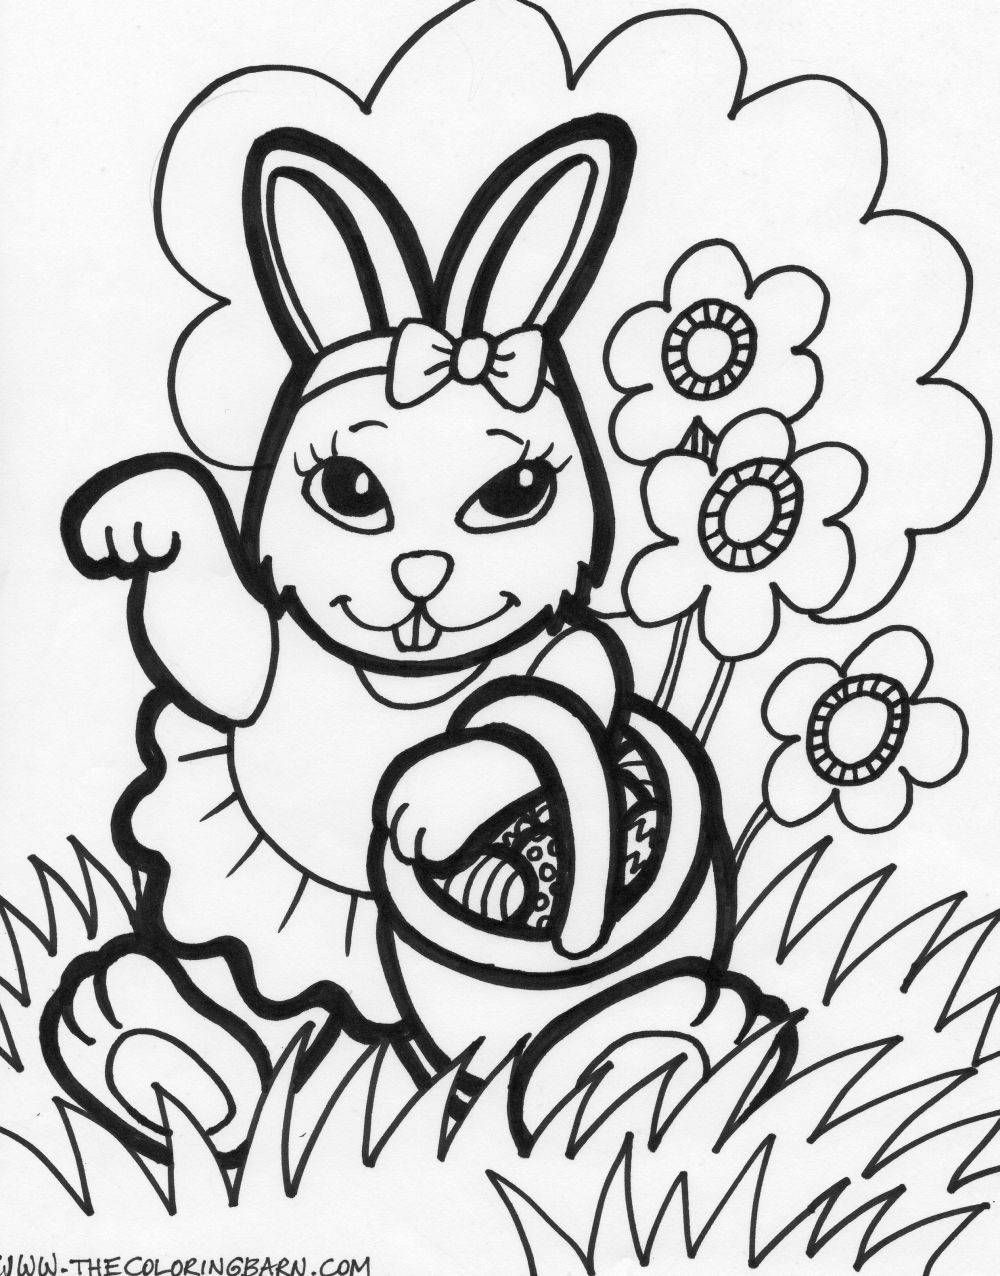 Bunny coloring pictures for easter - Easter Bunny Coloring Free Online Printable Coloring Pages Sheets For Kids Get The Latest Free Easter Bunny Coloring Images Favorite Coloring Pages To